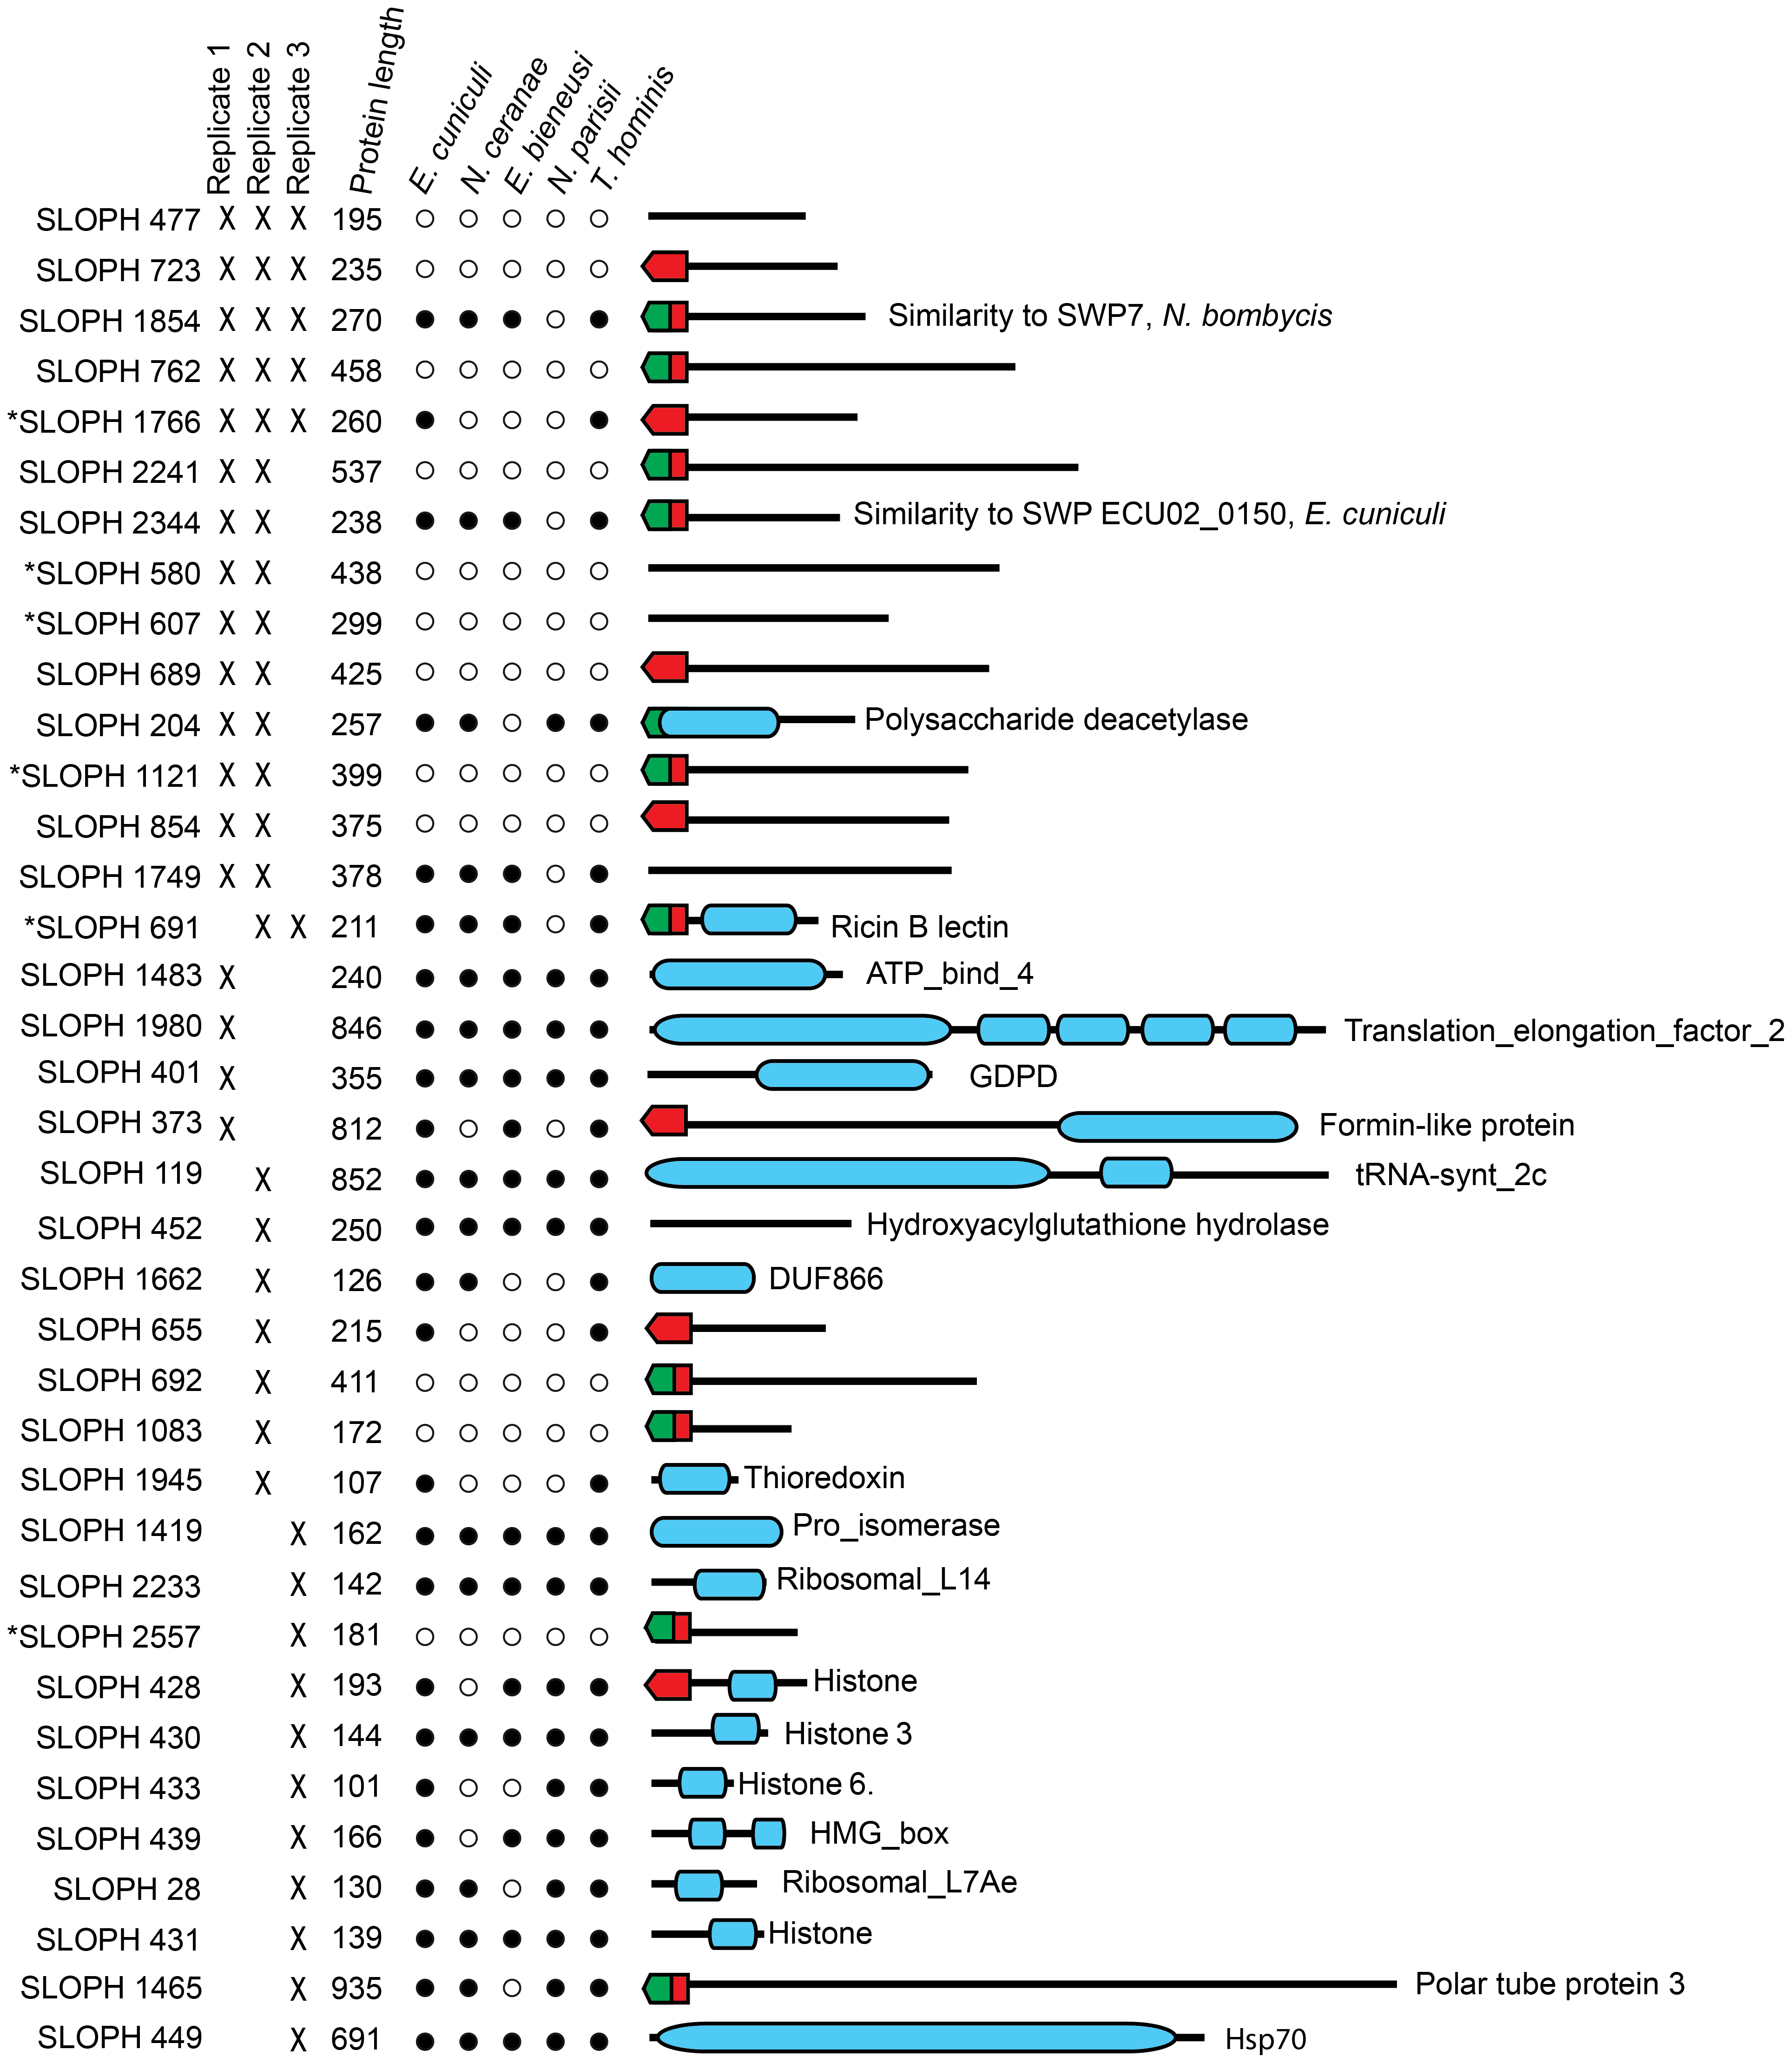 Proteins found in mass spectrometry analysis of medium from germinated <i>S. lophii</i> spores.